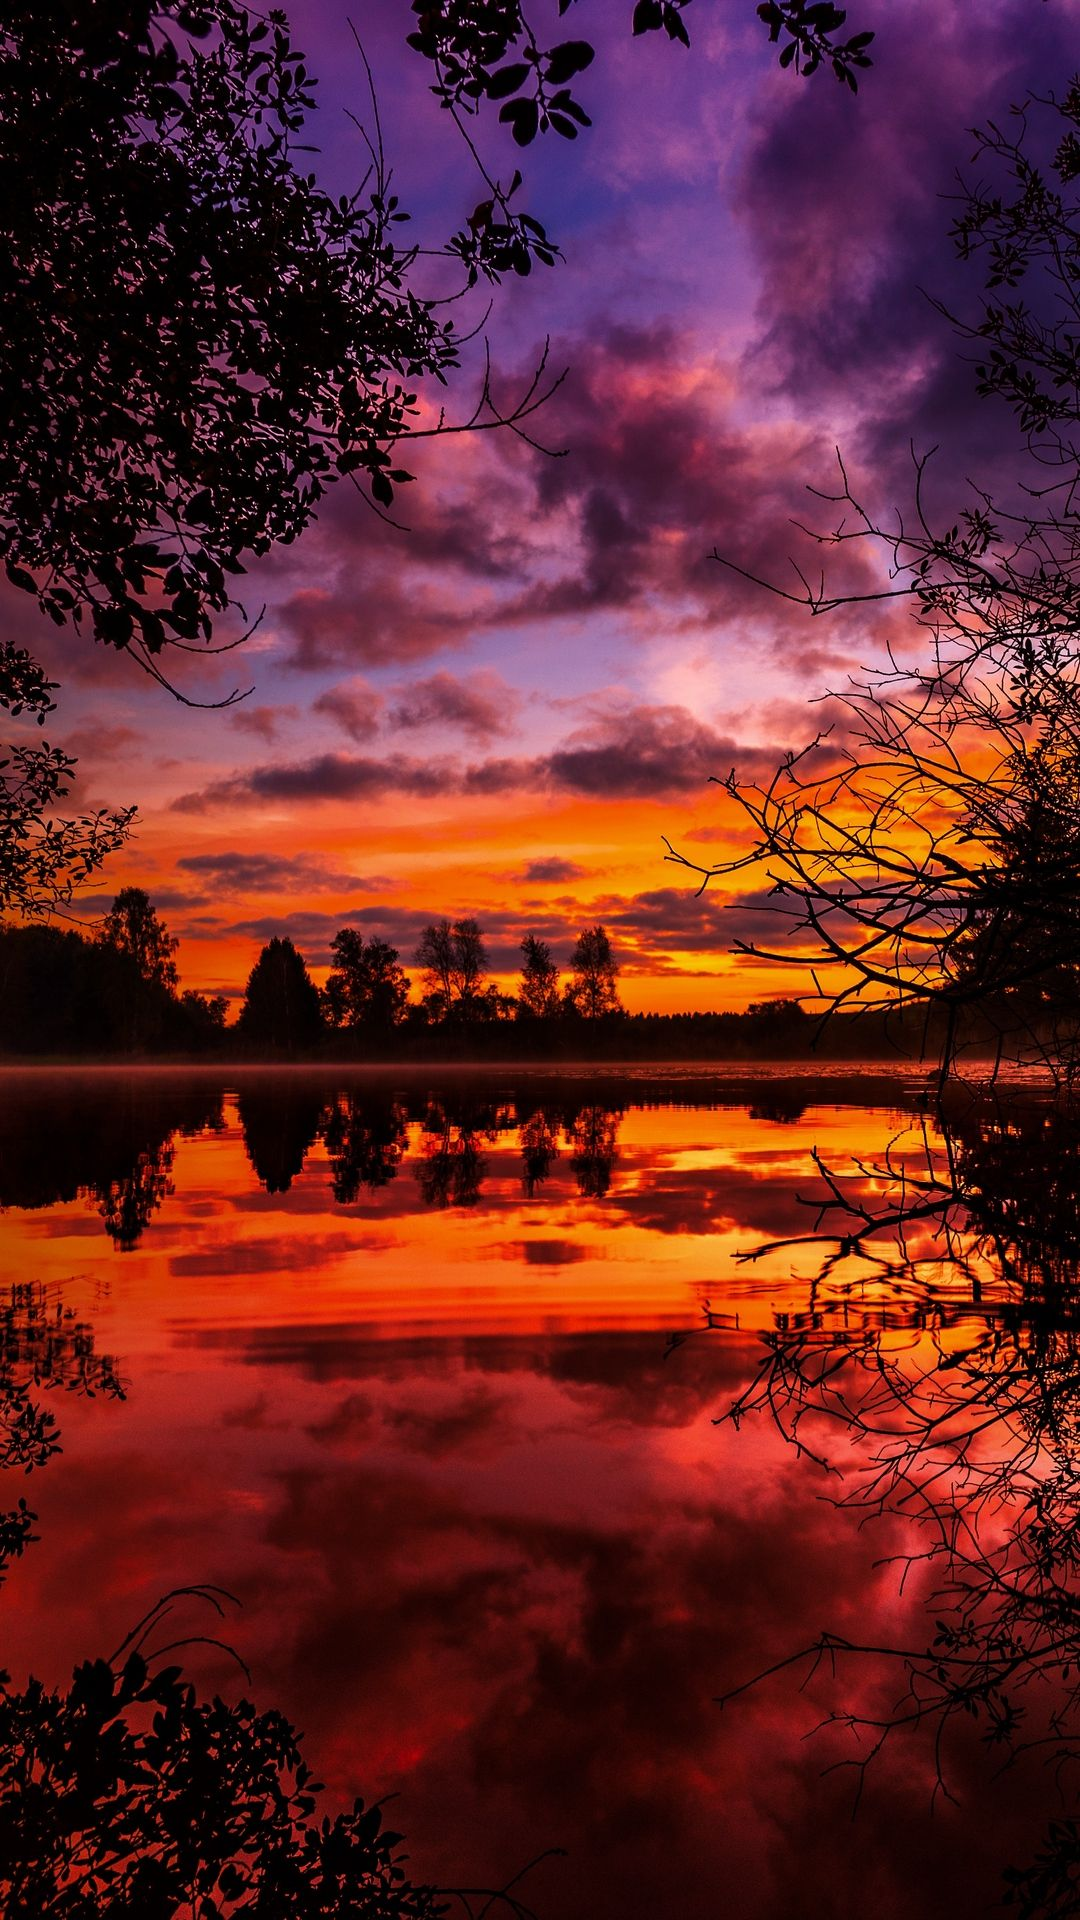 Pin by Miles Evans on kickass wallpapers | Sunset nature ...